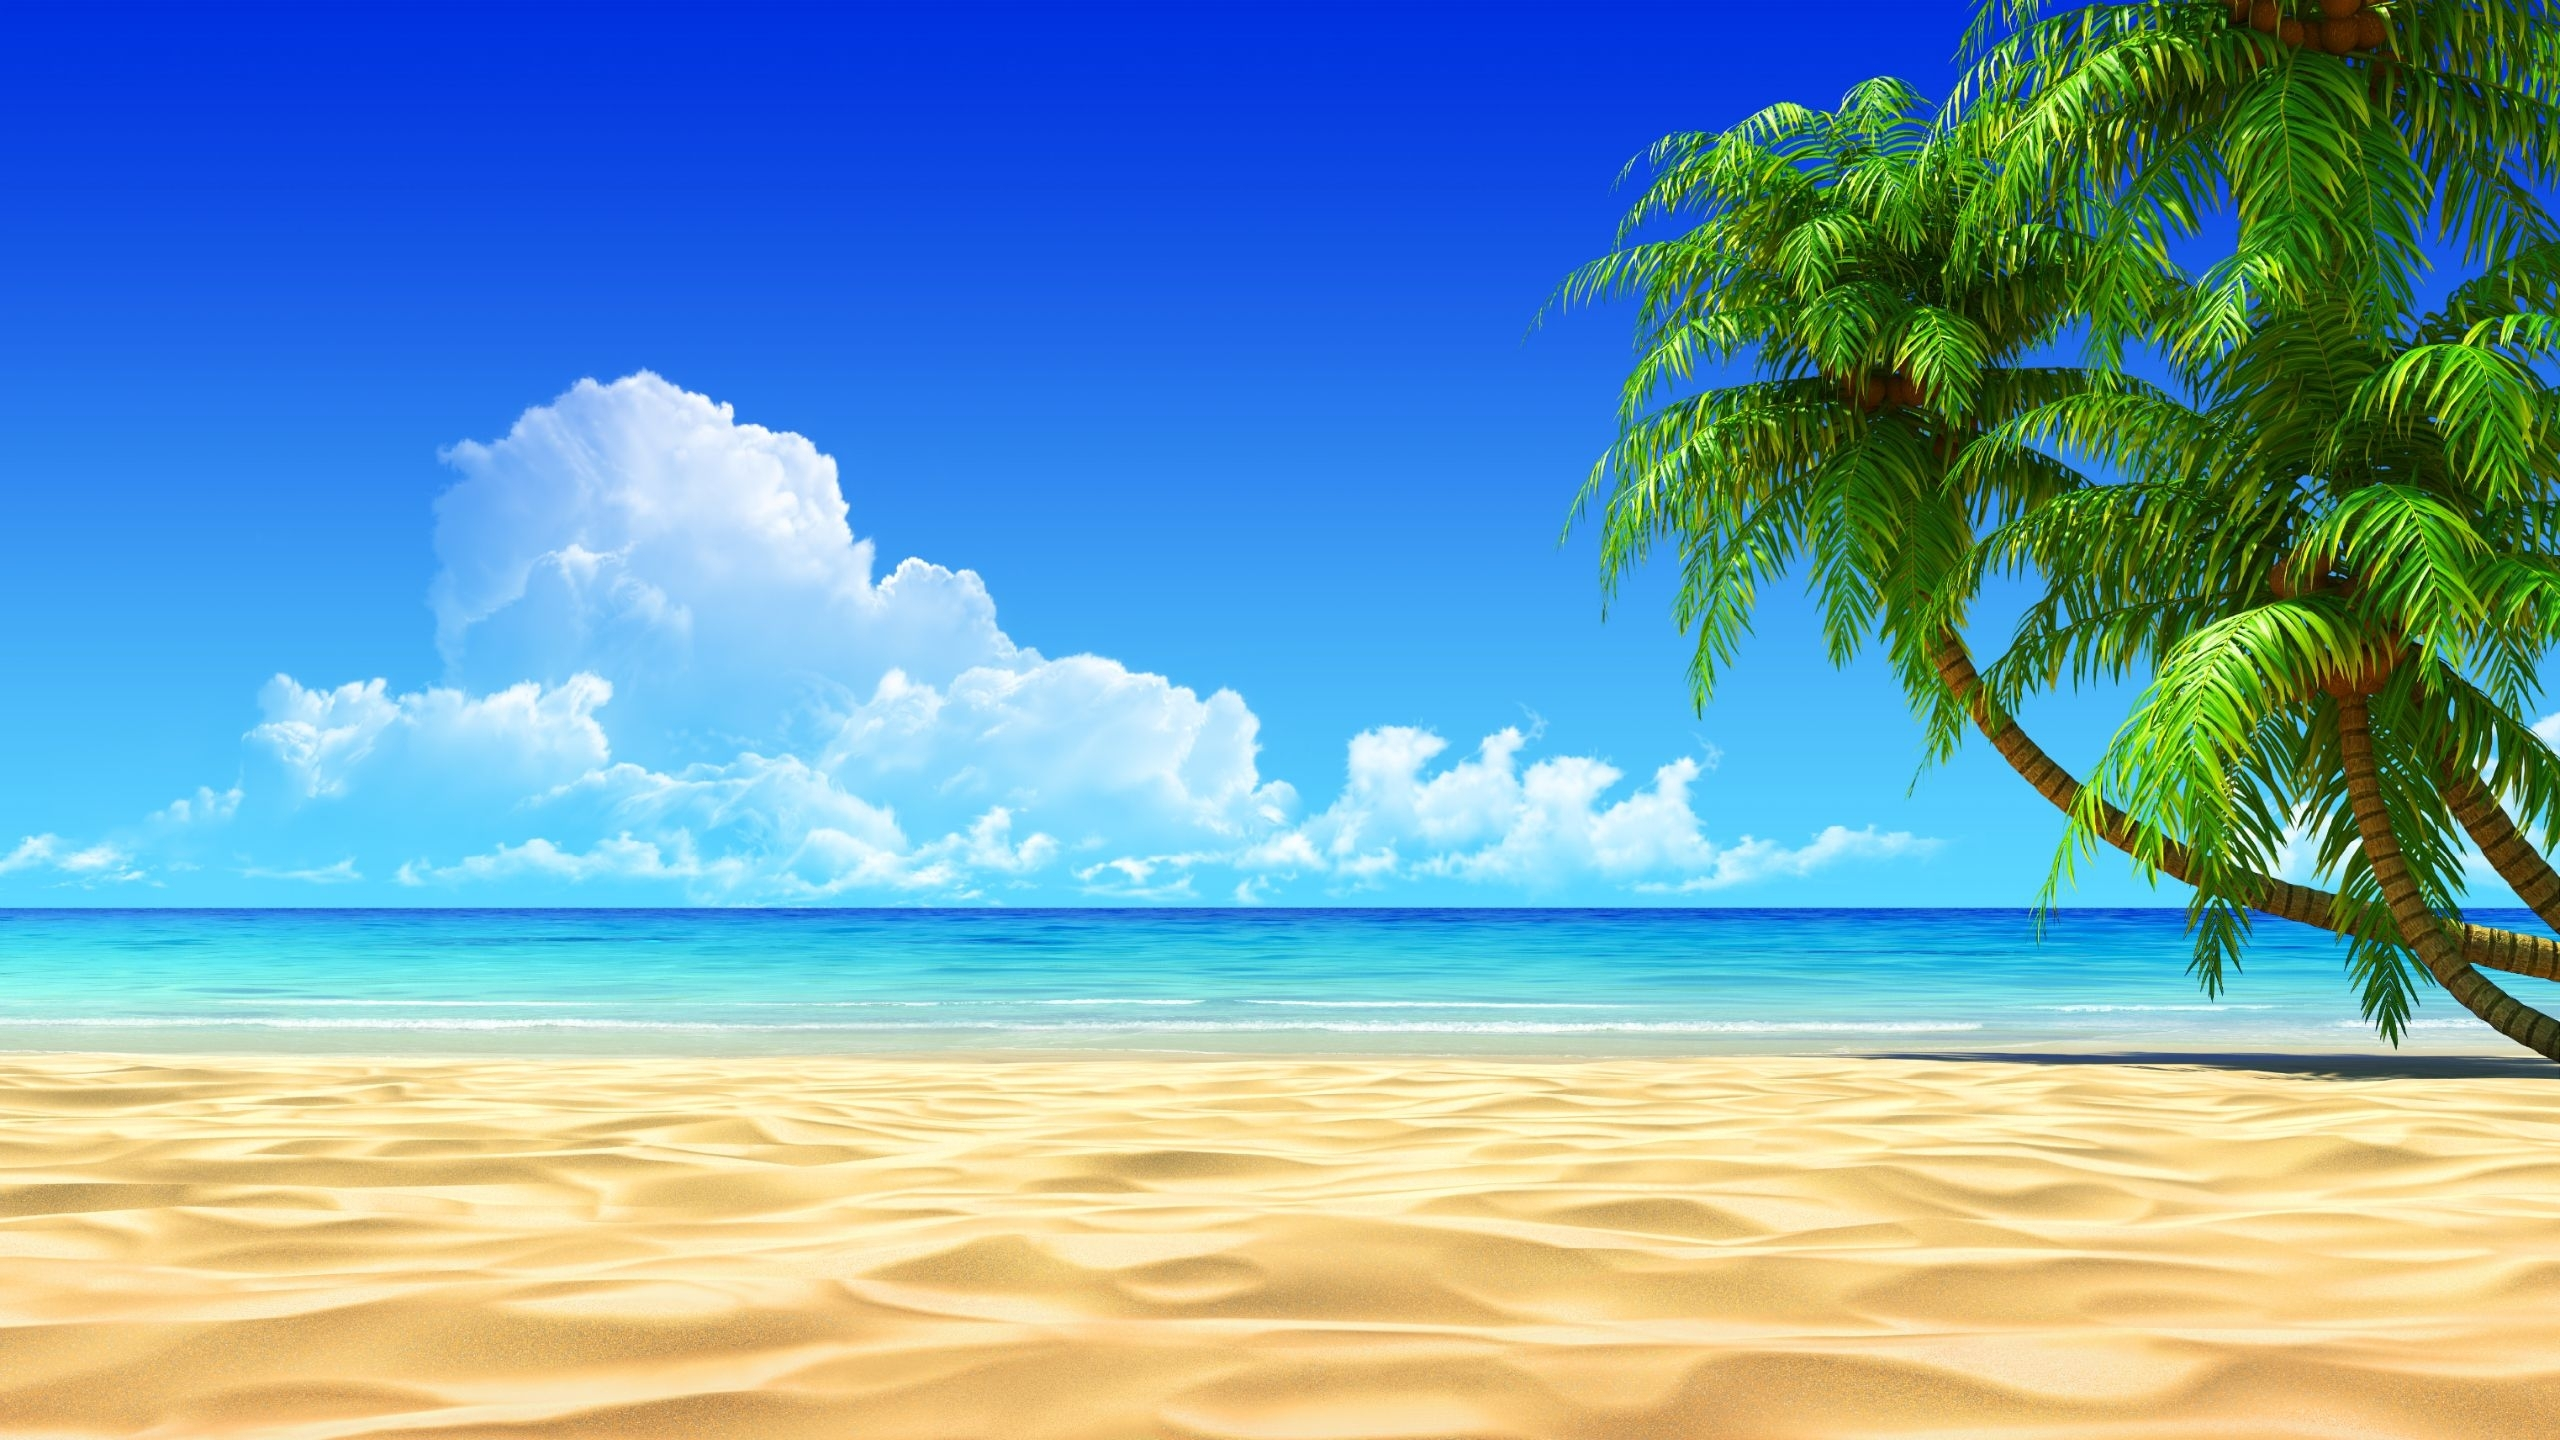 image for tropical beaches with palm trees wallpapers desktop